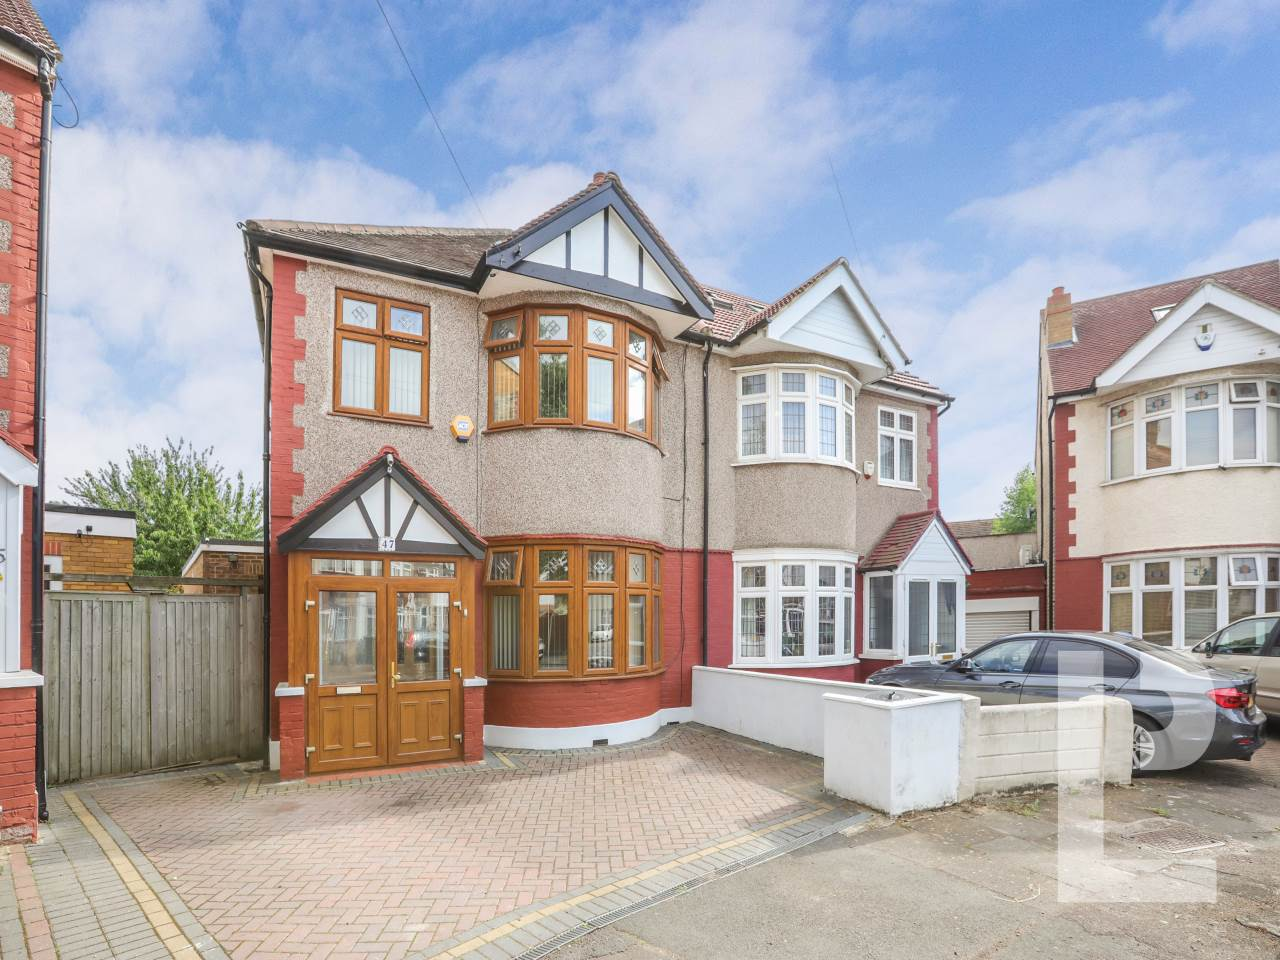 4 bed house for sale in Newbury Park , IG3